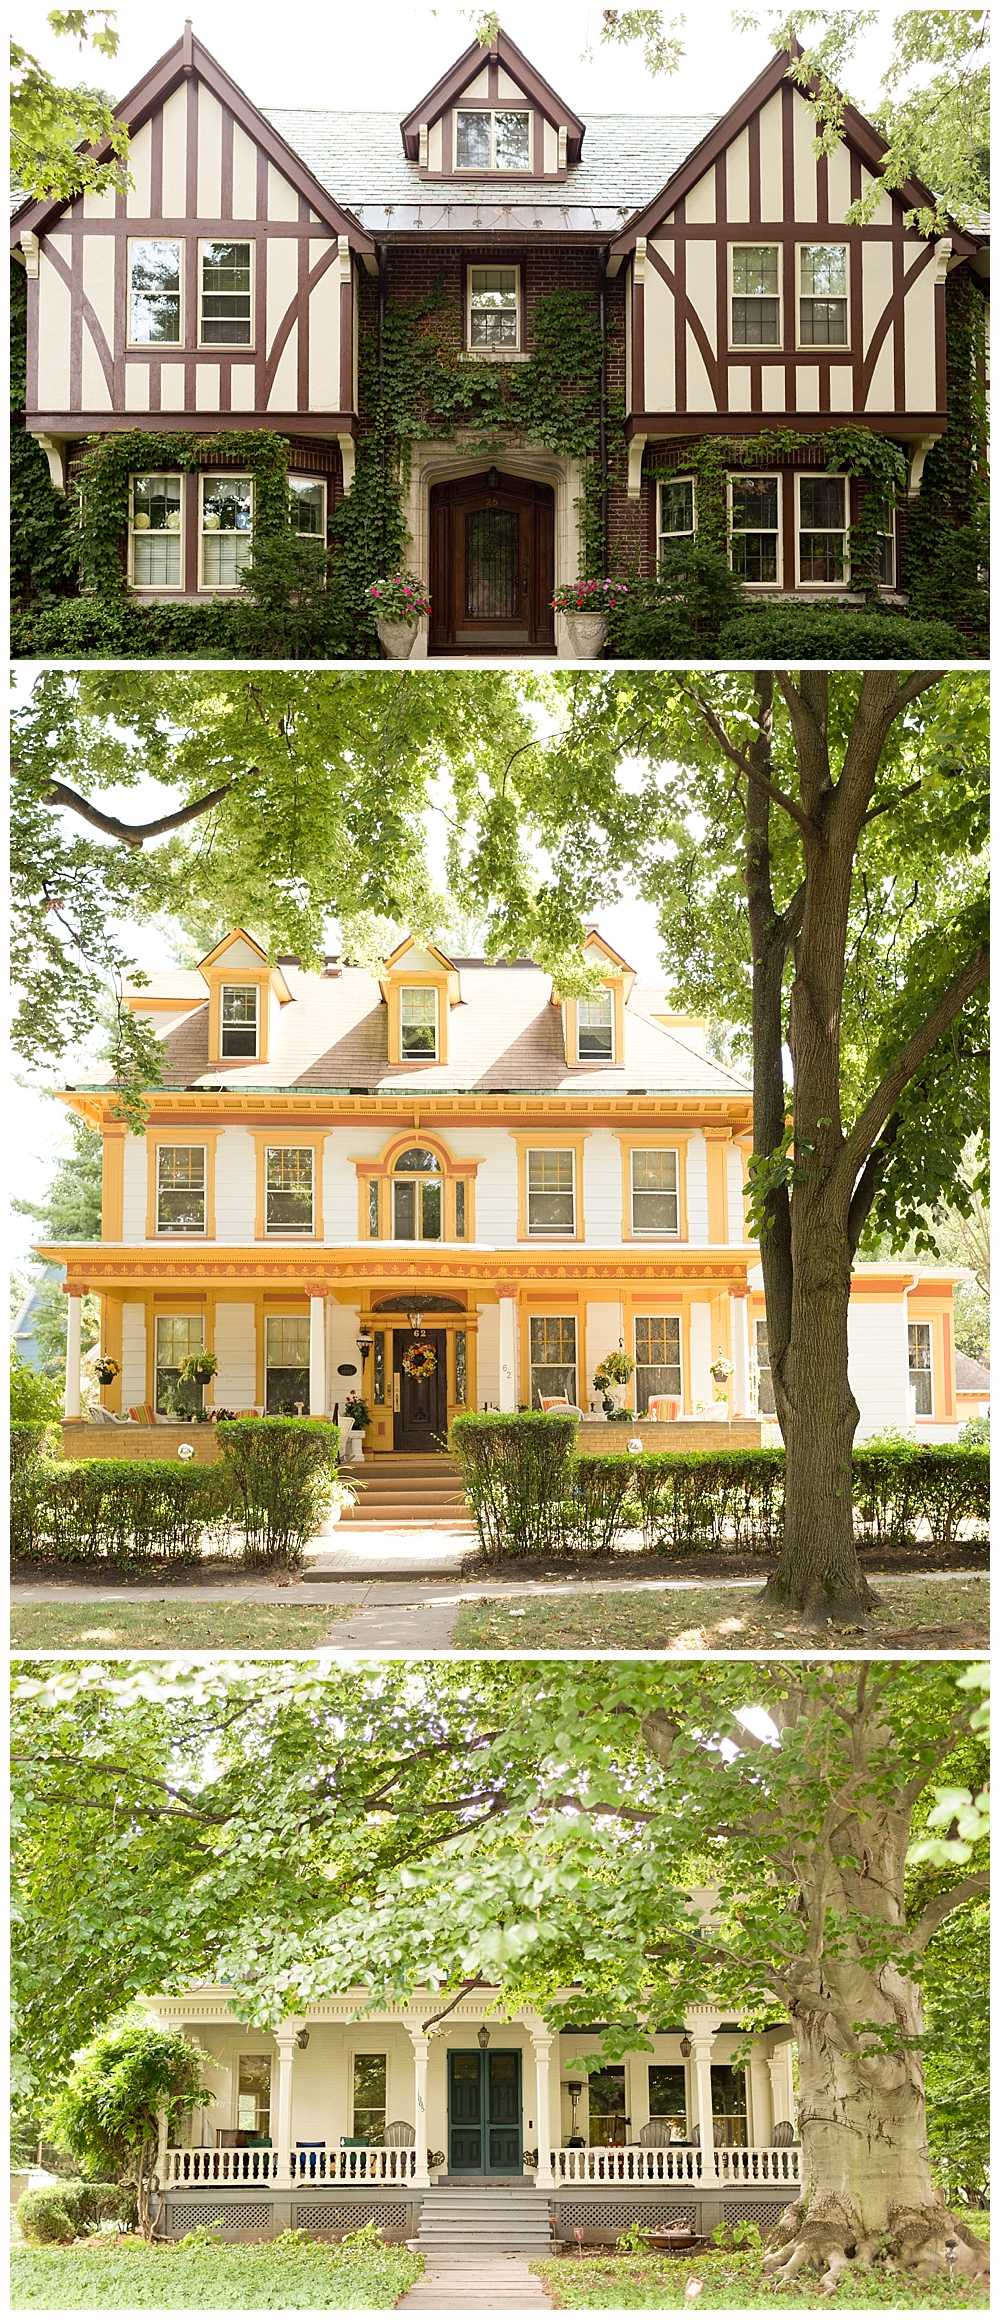 beautiful historic homes in downtown Rochester, New York